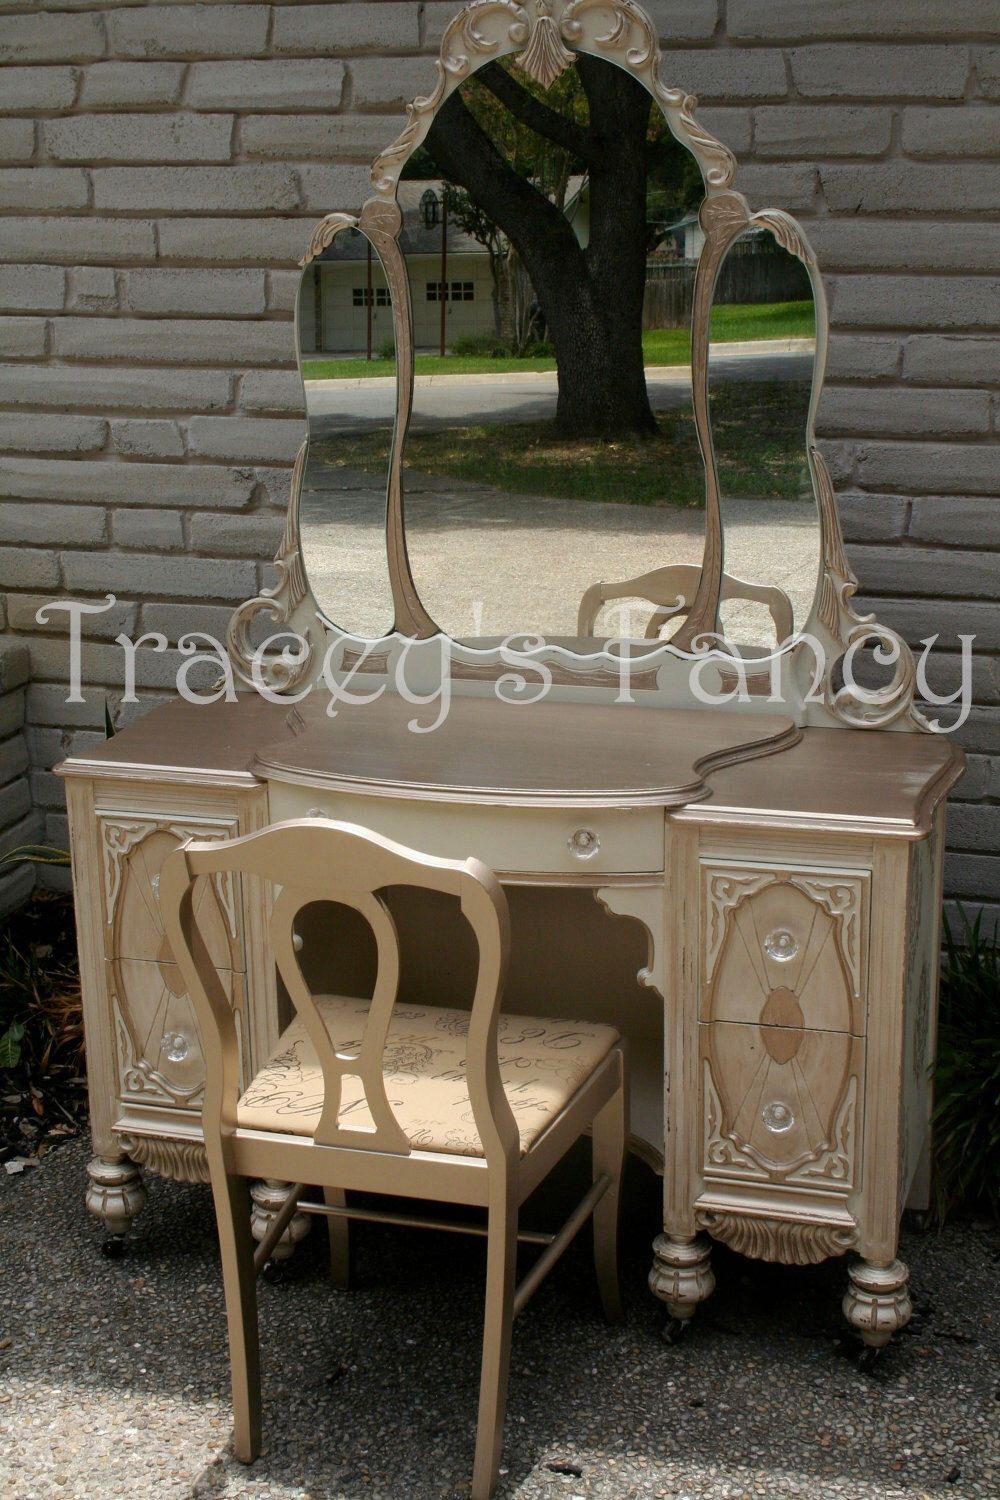 Class Act - Vintage Vanity MADE TO ORDER by TraceysFancy on Etsy https://www.etsy.com/listing/104497512/class-act-vintage-vanity-made-to-order